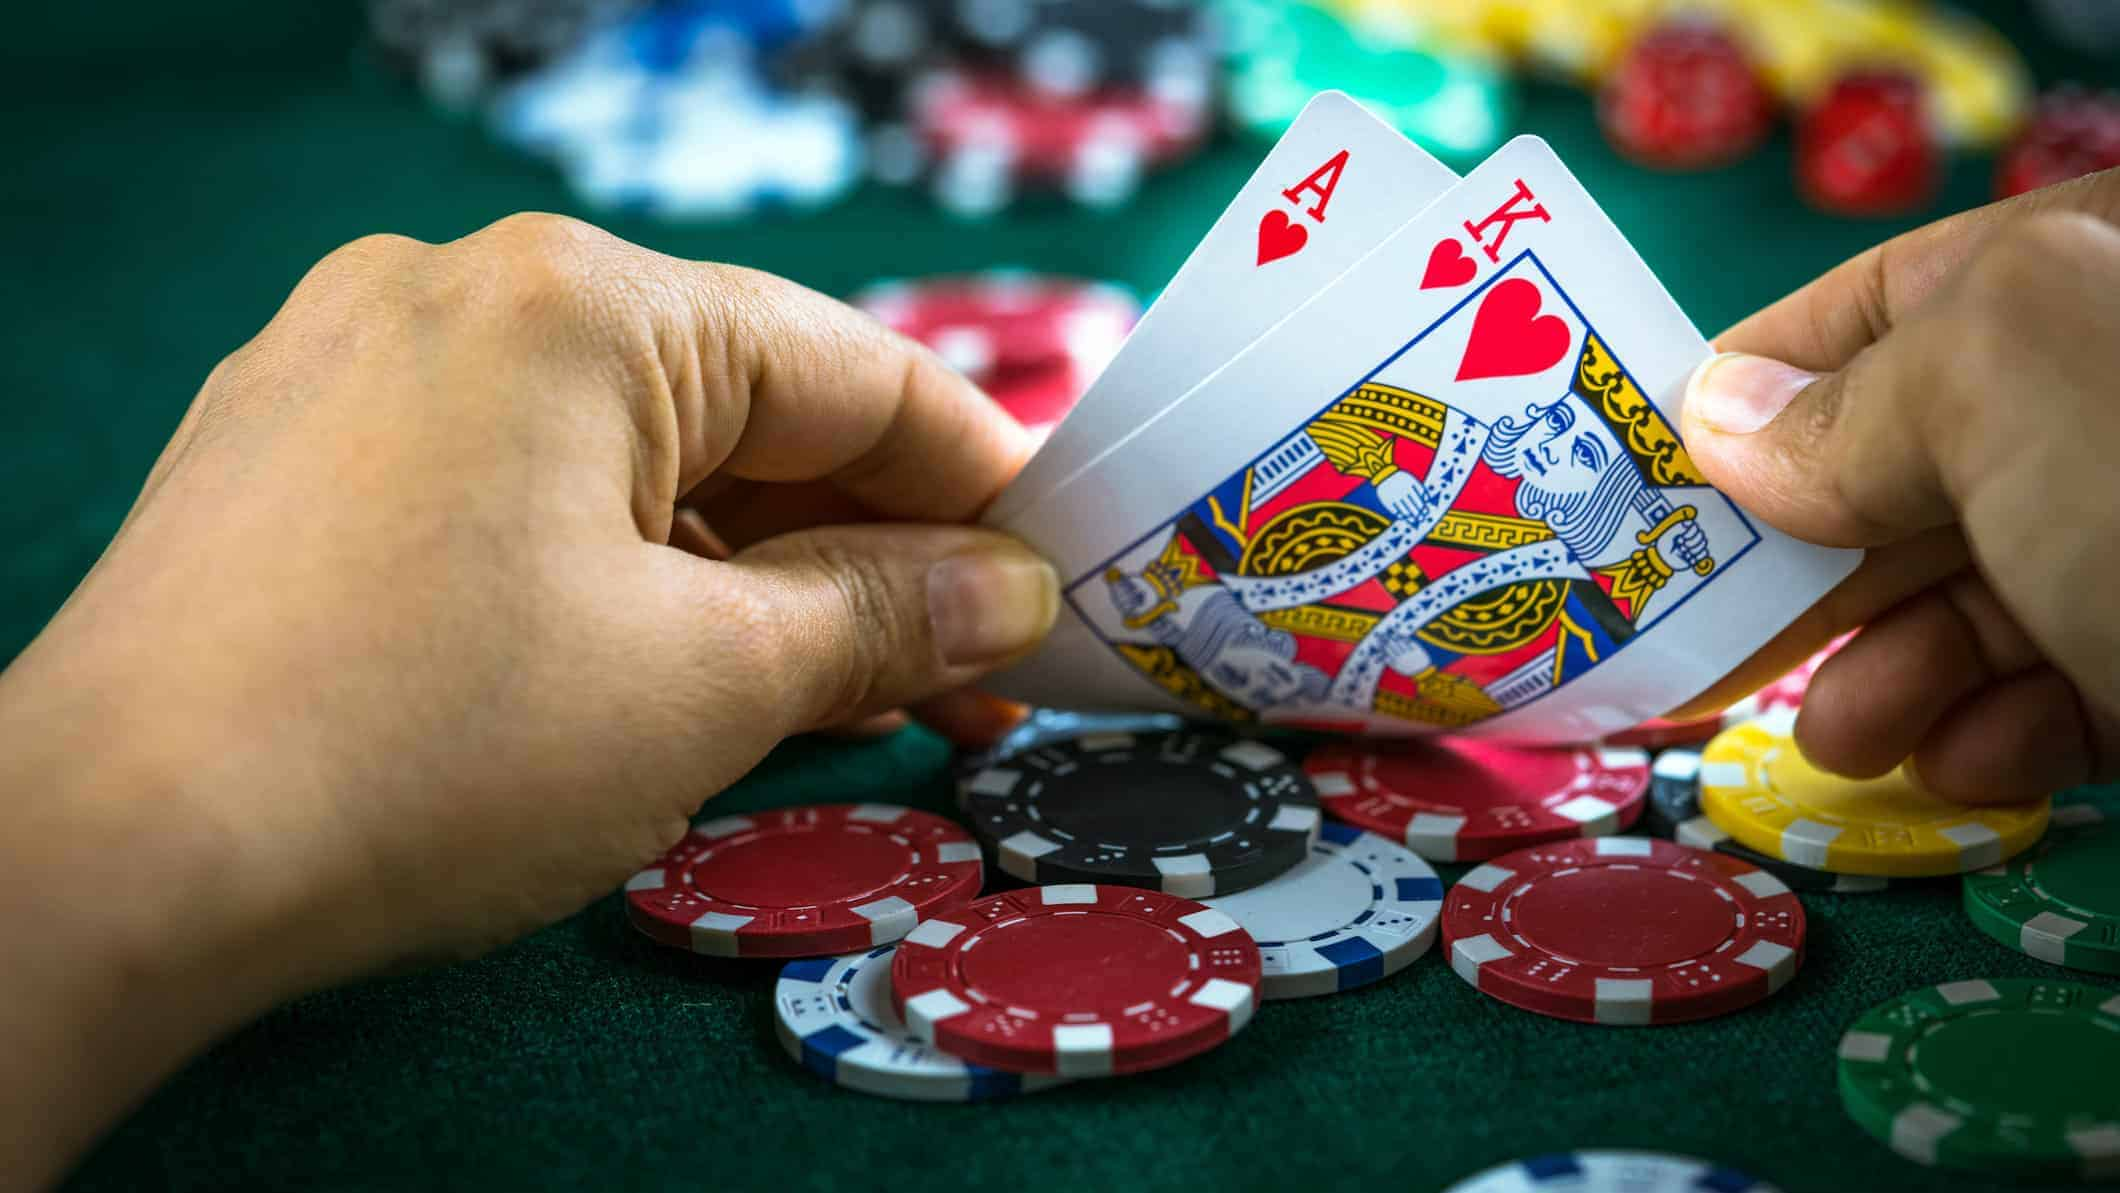 Nine-Month Slot Income Slide Leads To PA's Second-Ever FY Casino Revenue Decline